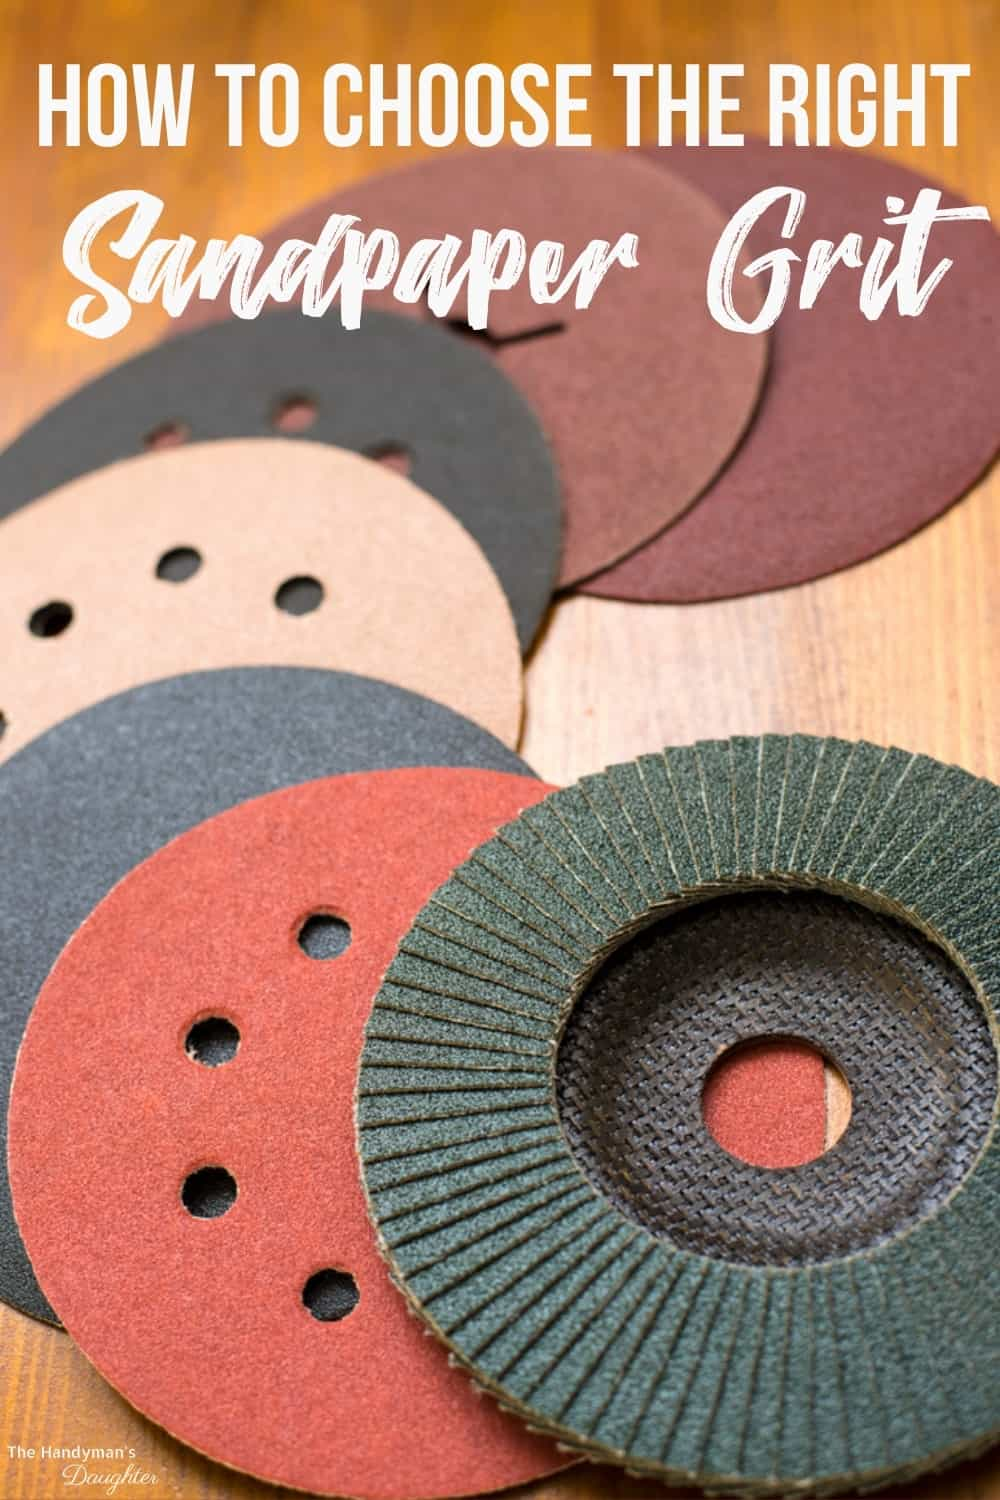 How to choose the right sandpaper grit